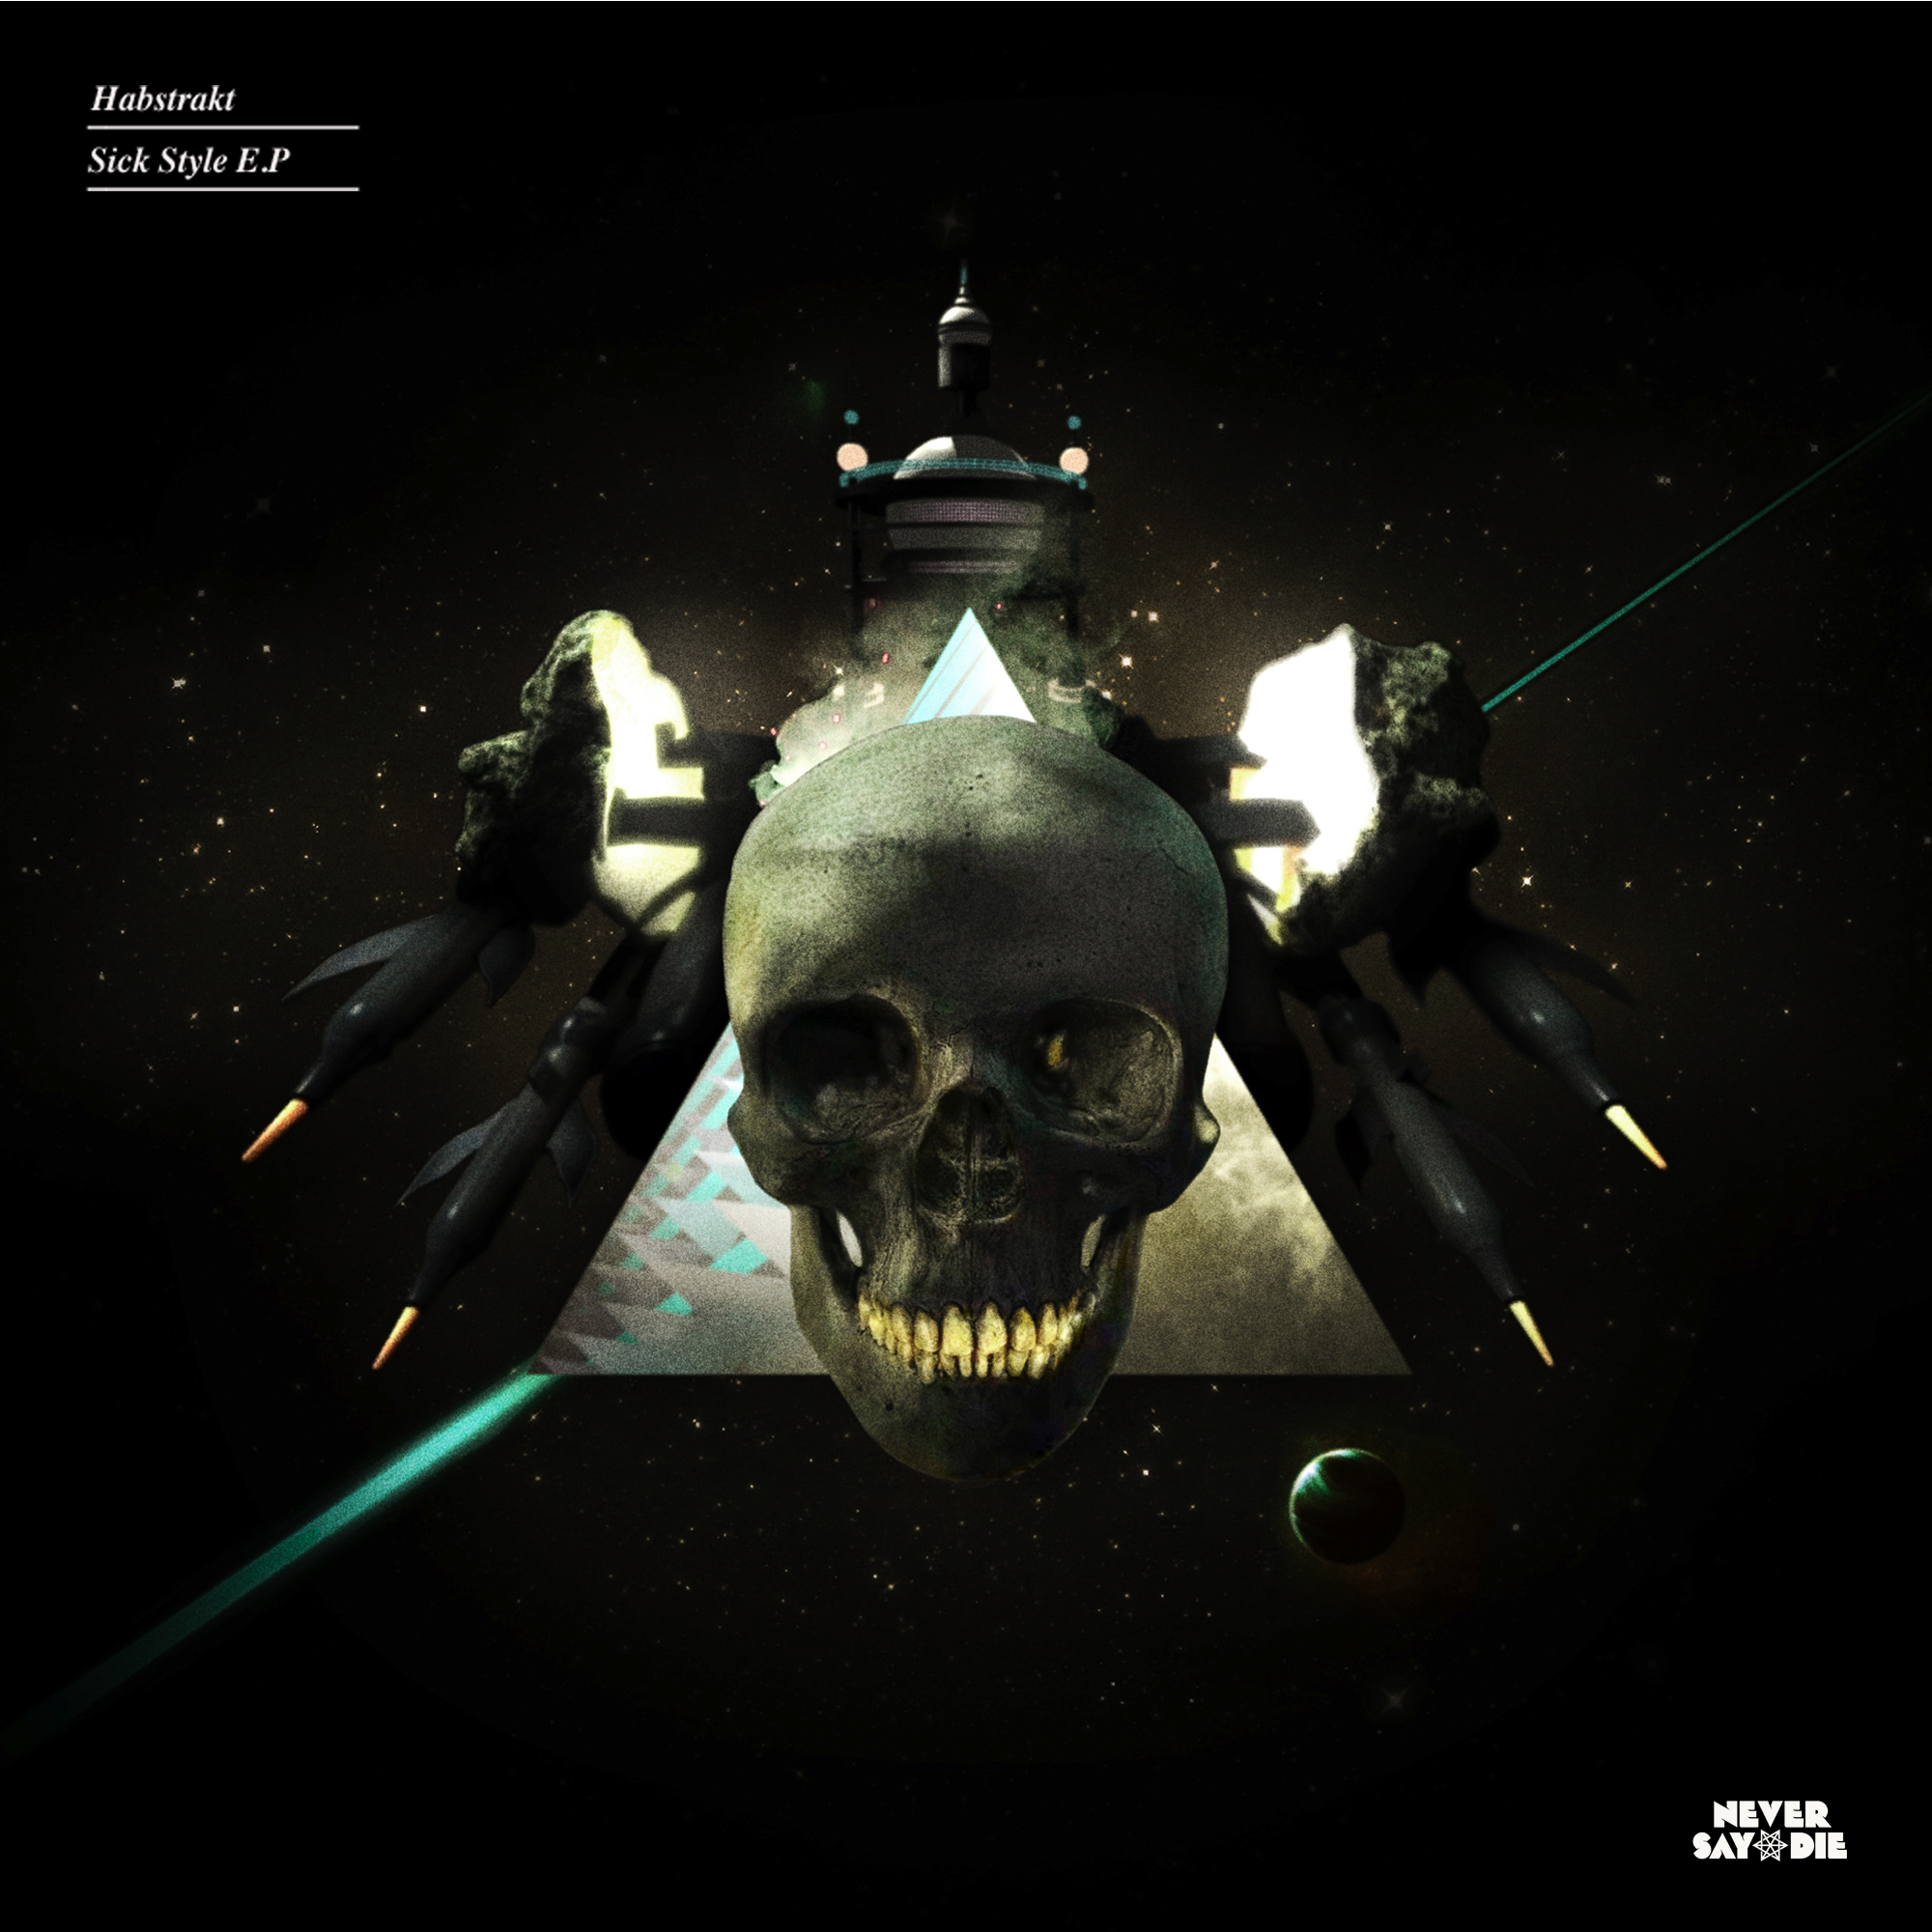 Habstrakt Sick Style Ep With Free Download Never Say Die Records Aaa Music